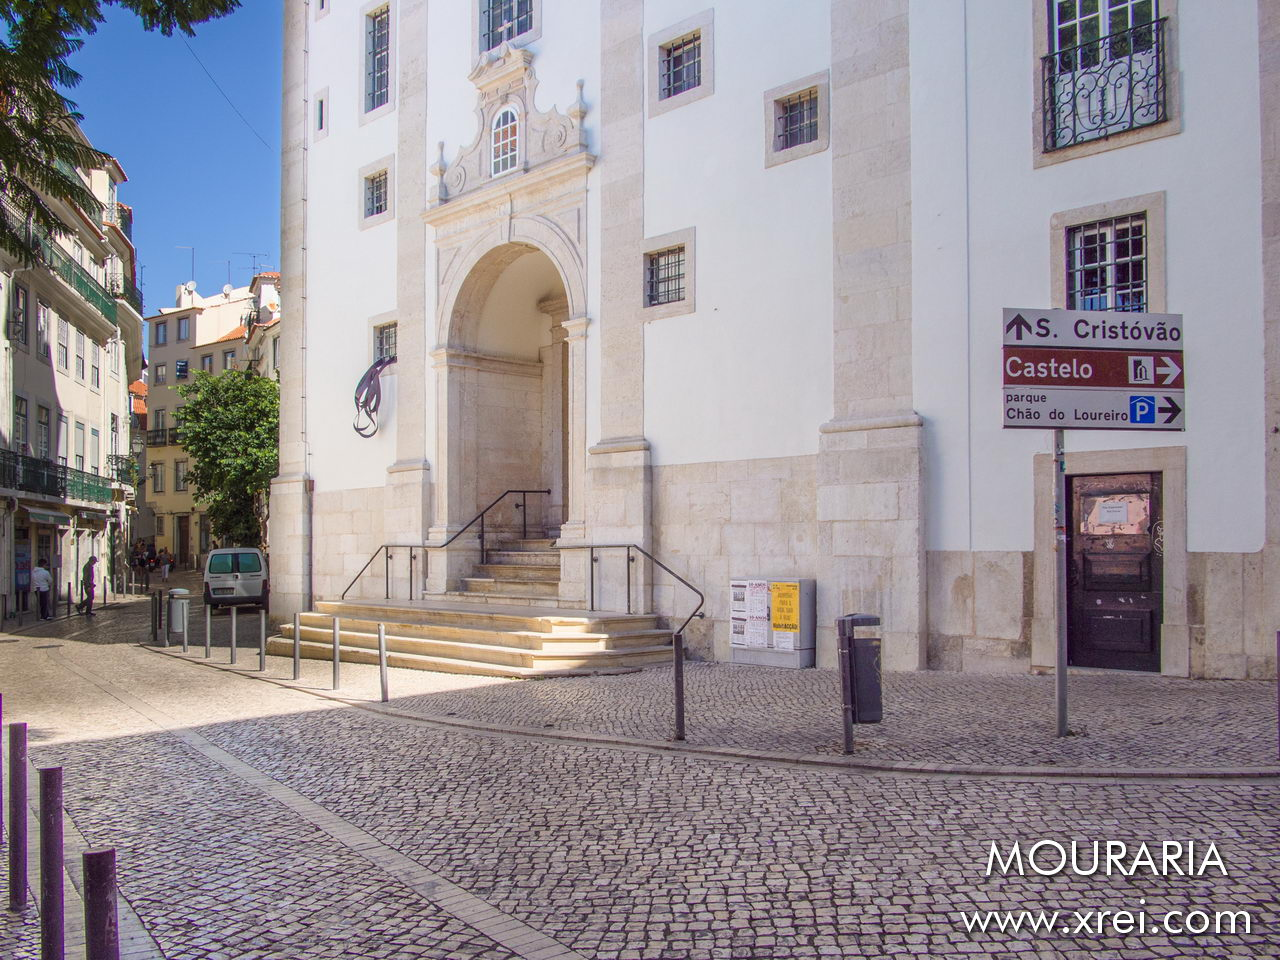 São Cristóvão Church is a 17th century building, one of the very rare buildings in Lisbon that was miraculously spared by the 1755 earthquake